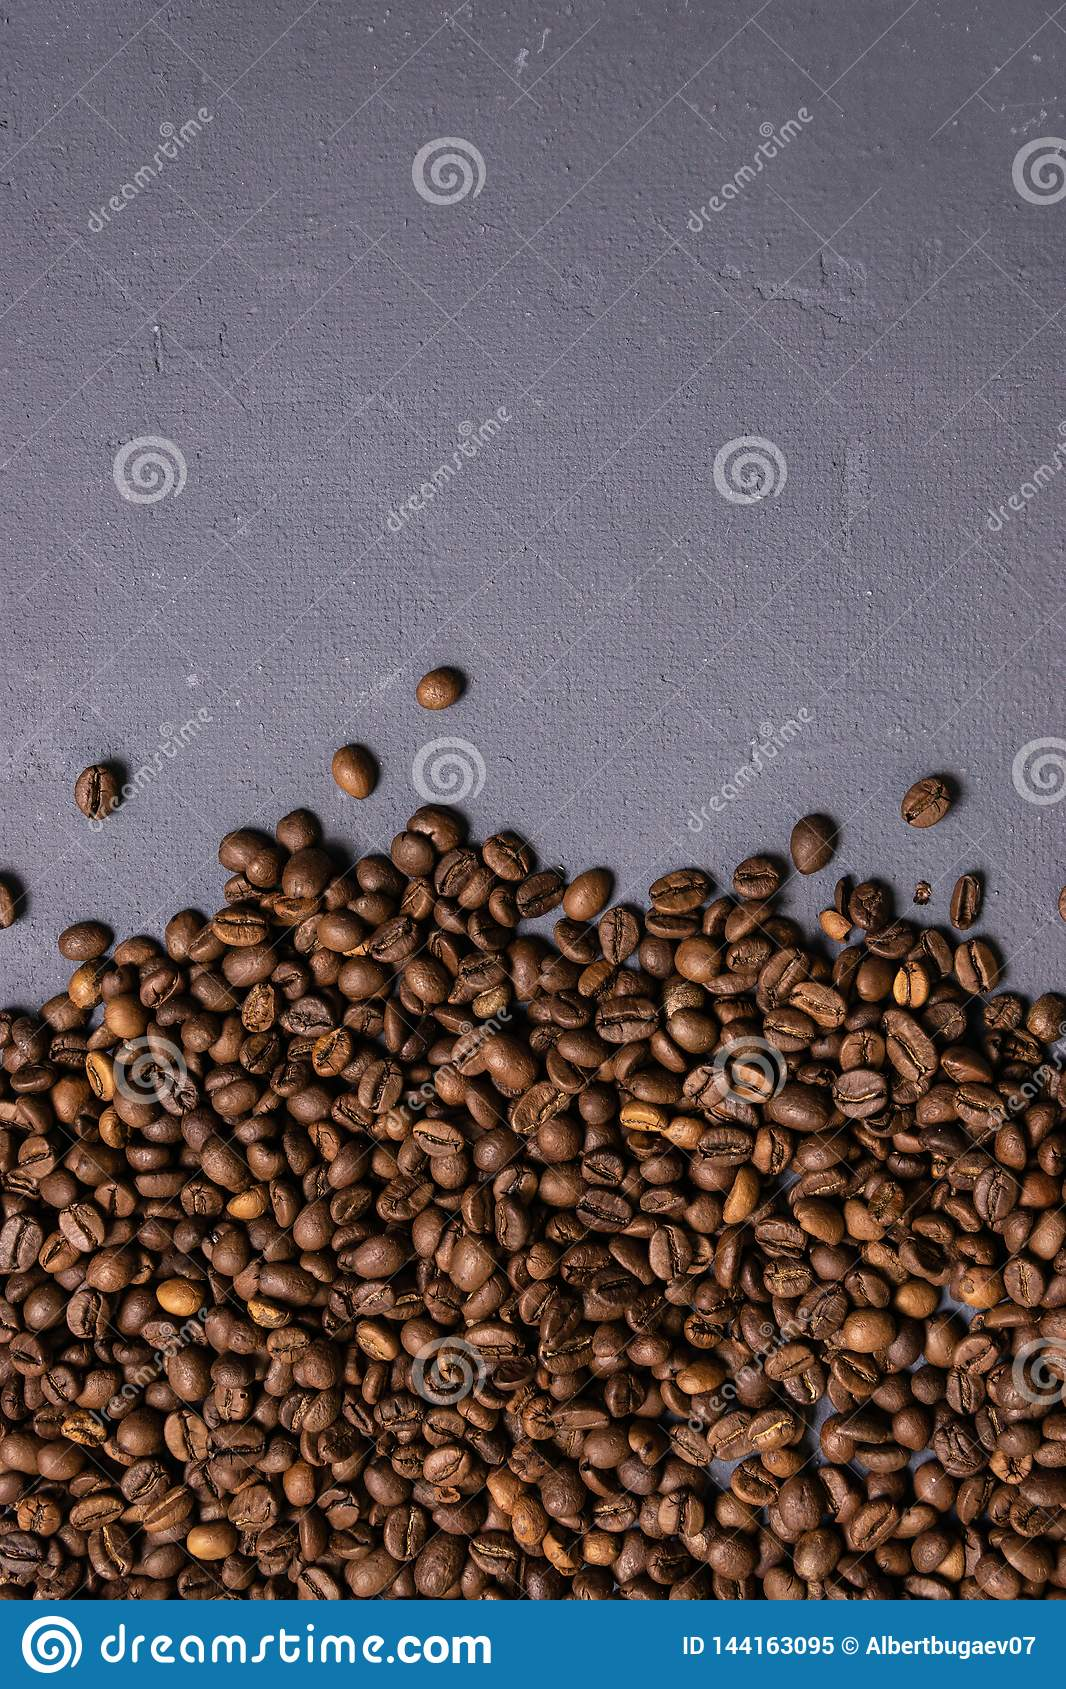 Roasted coffee beans in bulk on a gray concrete background. dark cofee roasted grain flavor aroma cafe, natural coffe shop